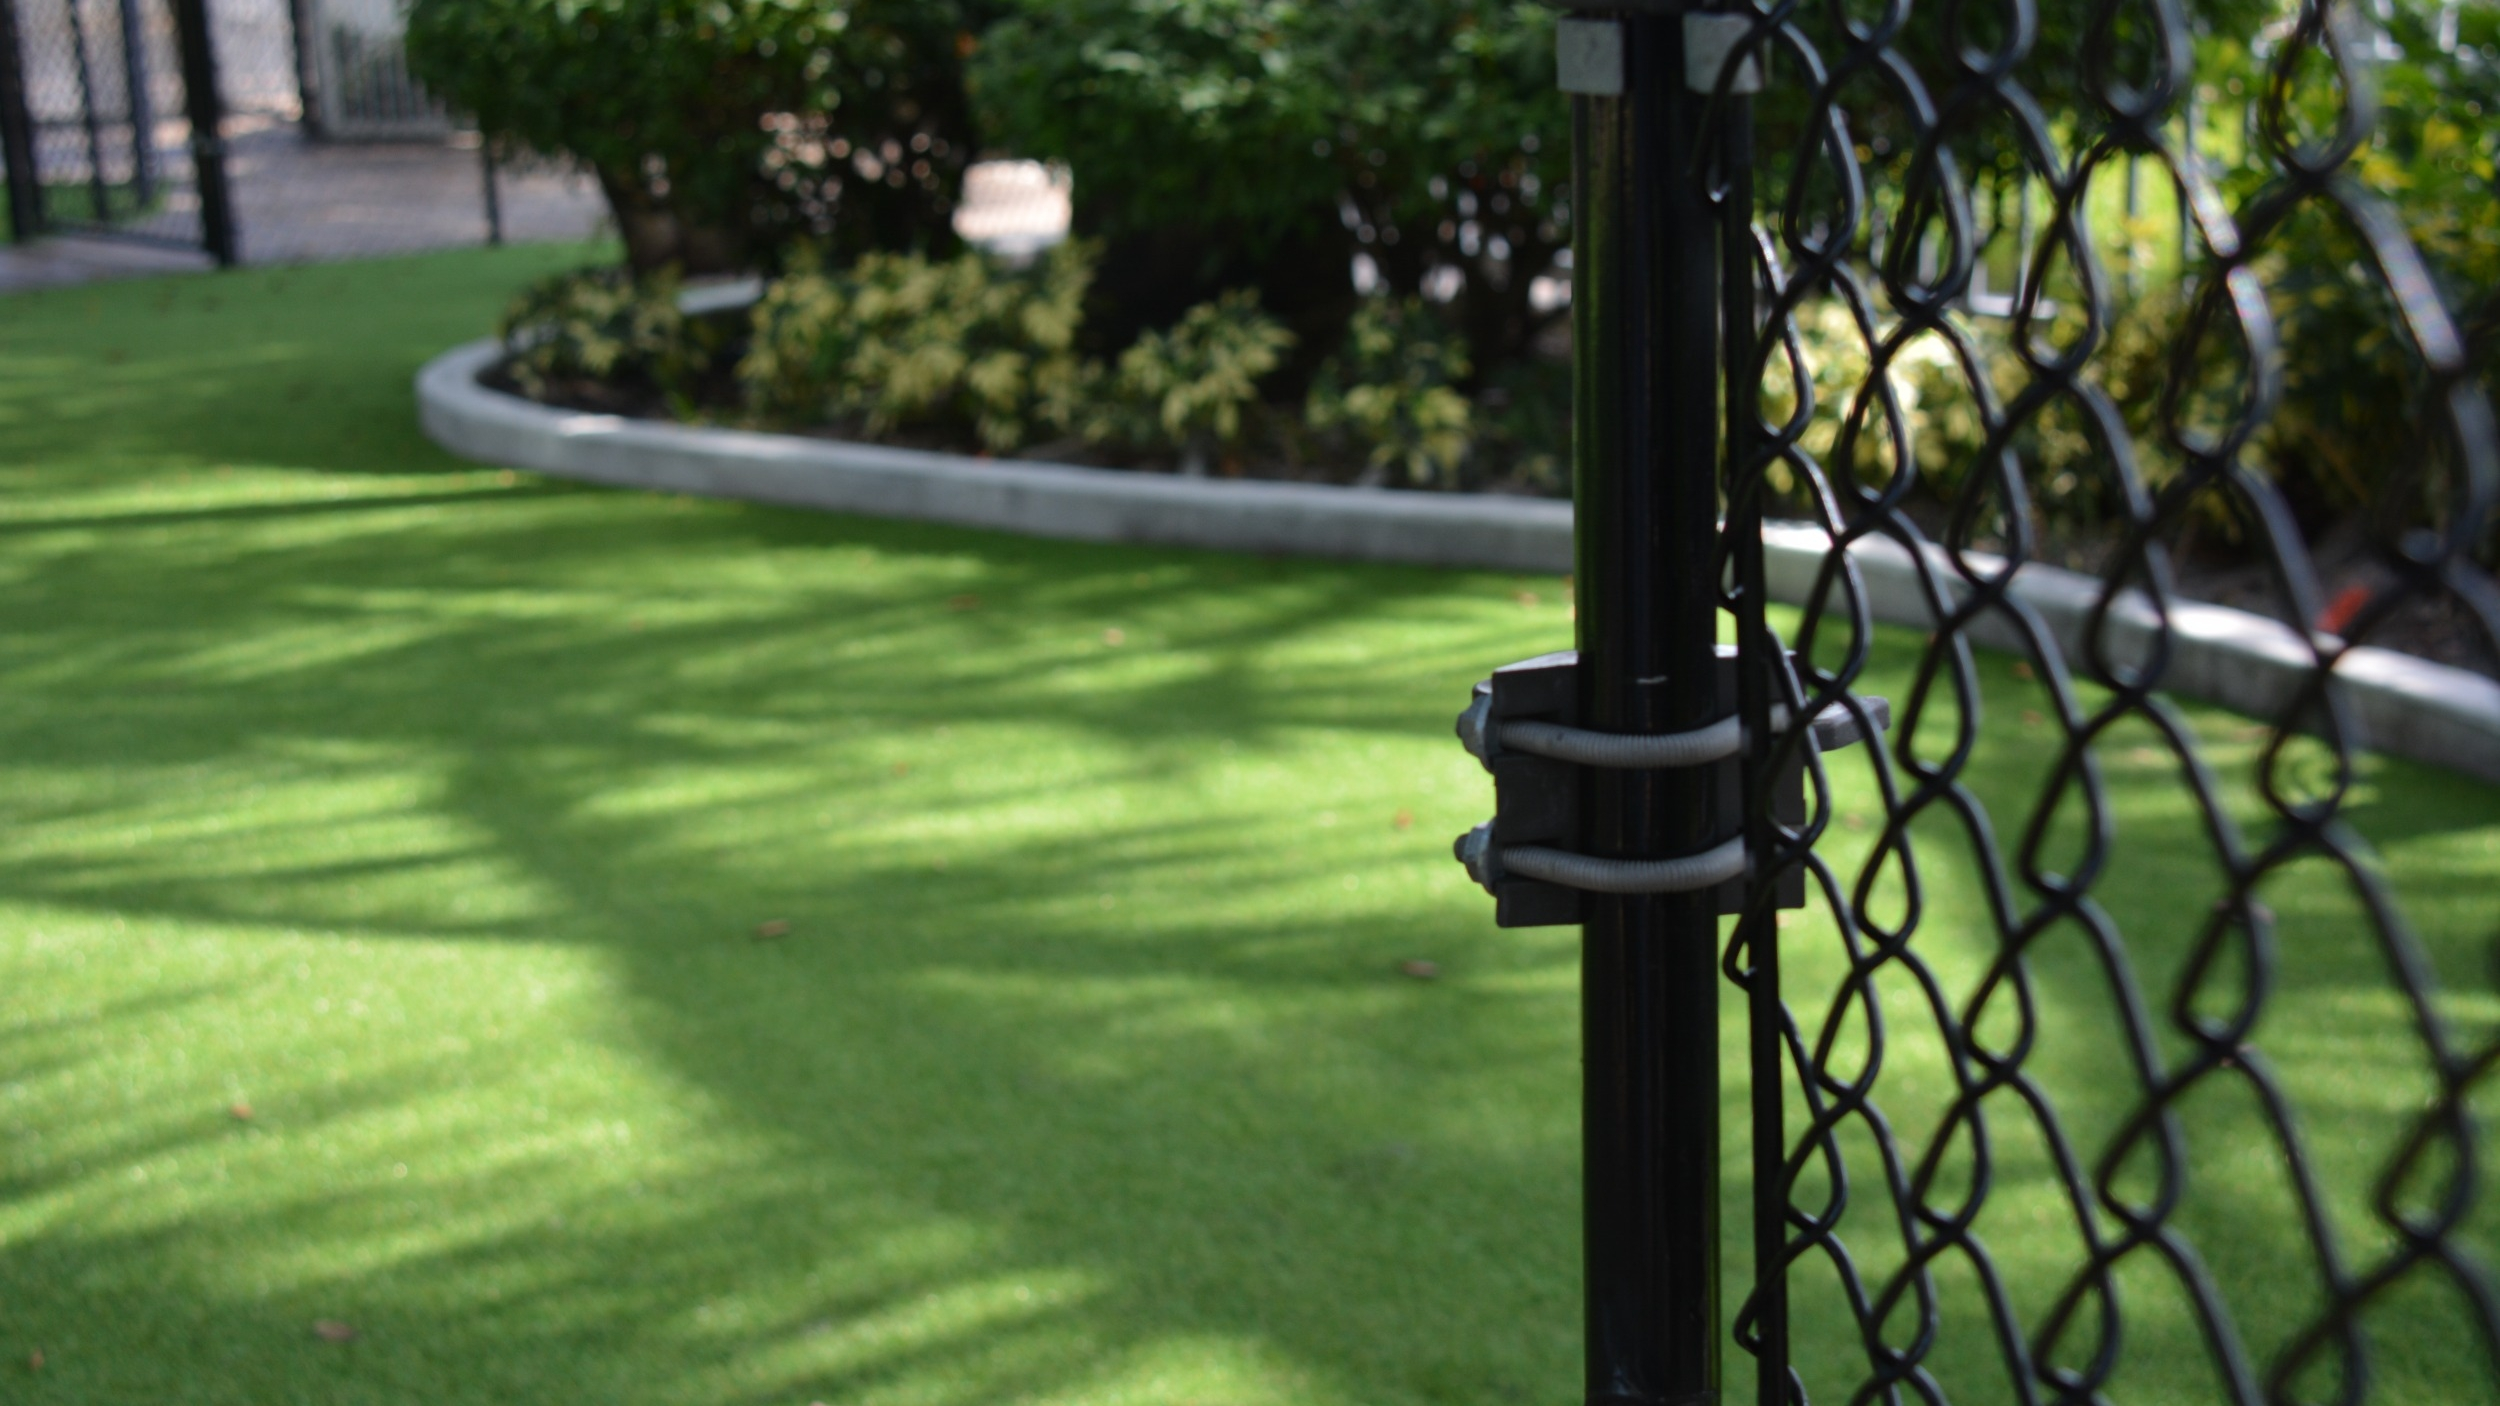 green lawn black chain-link fence synthetic artificial grass grass curved lawn borders